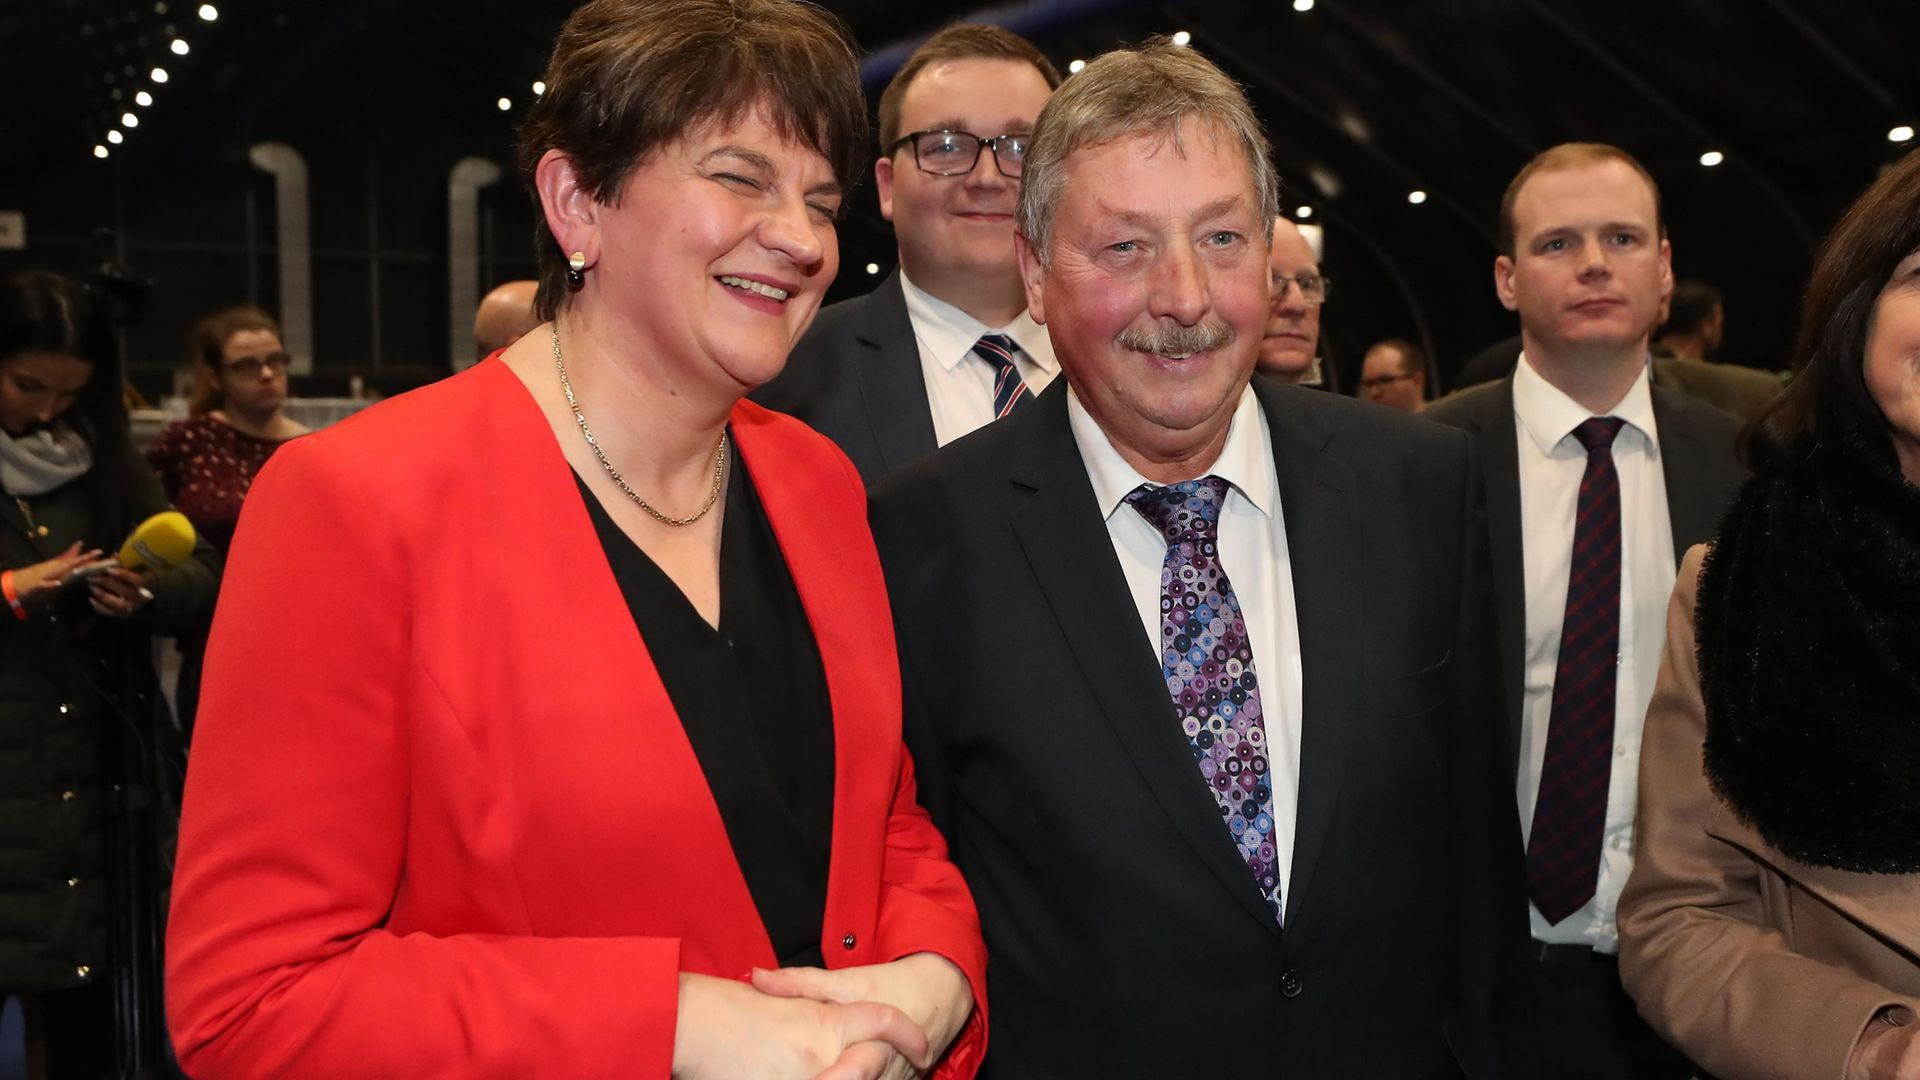 The DUP's Sammy Wilson celebrates with party leader Arlene Foster after winning the South Down seat at the Titanic exhibition centre, Belfast, for the 2019 General Election; Liam McBurney/ PA Images - Credit: PA